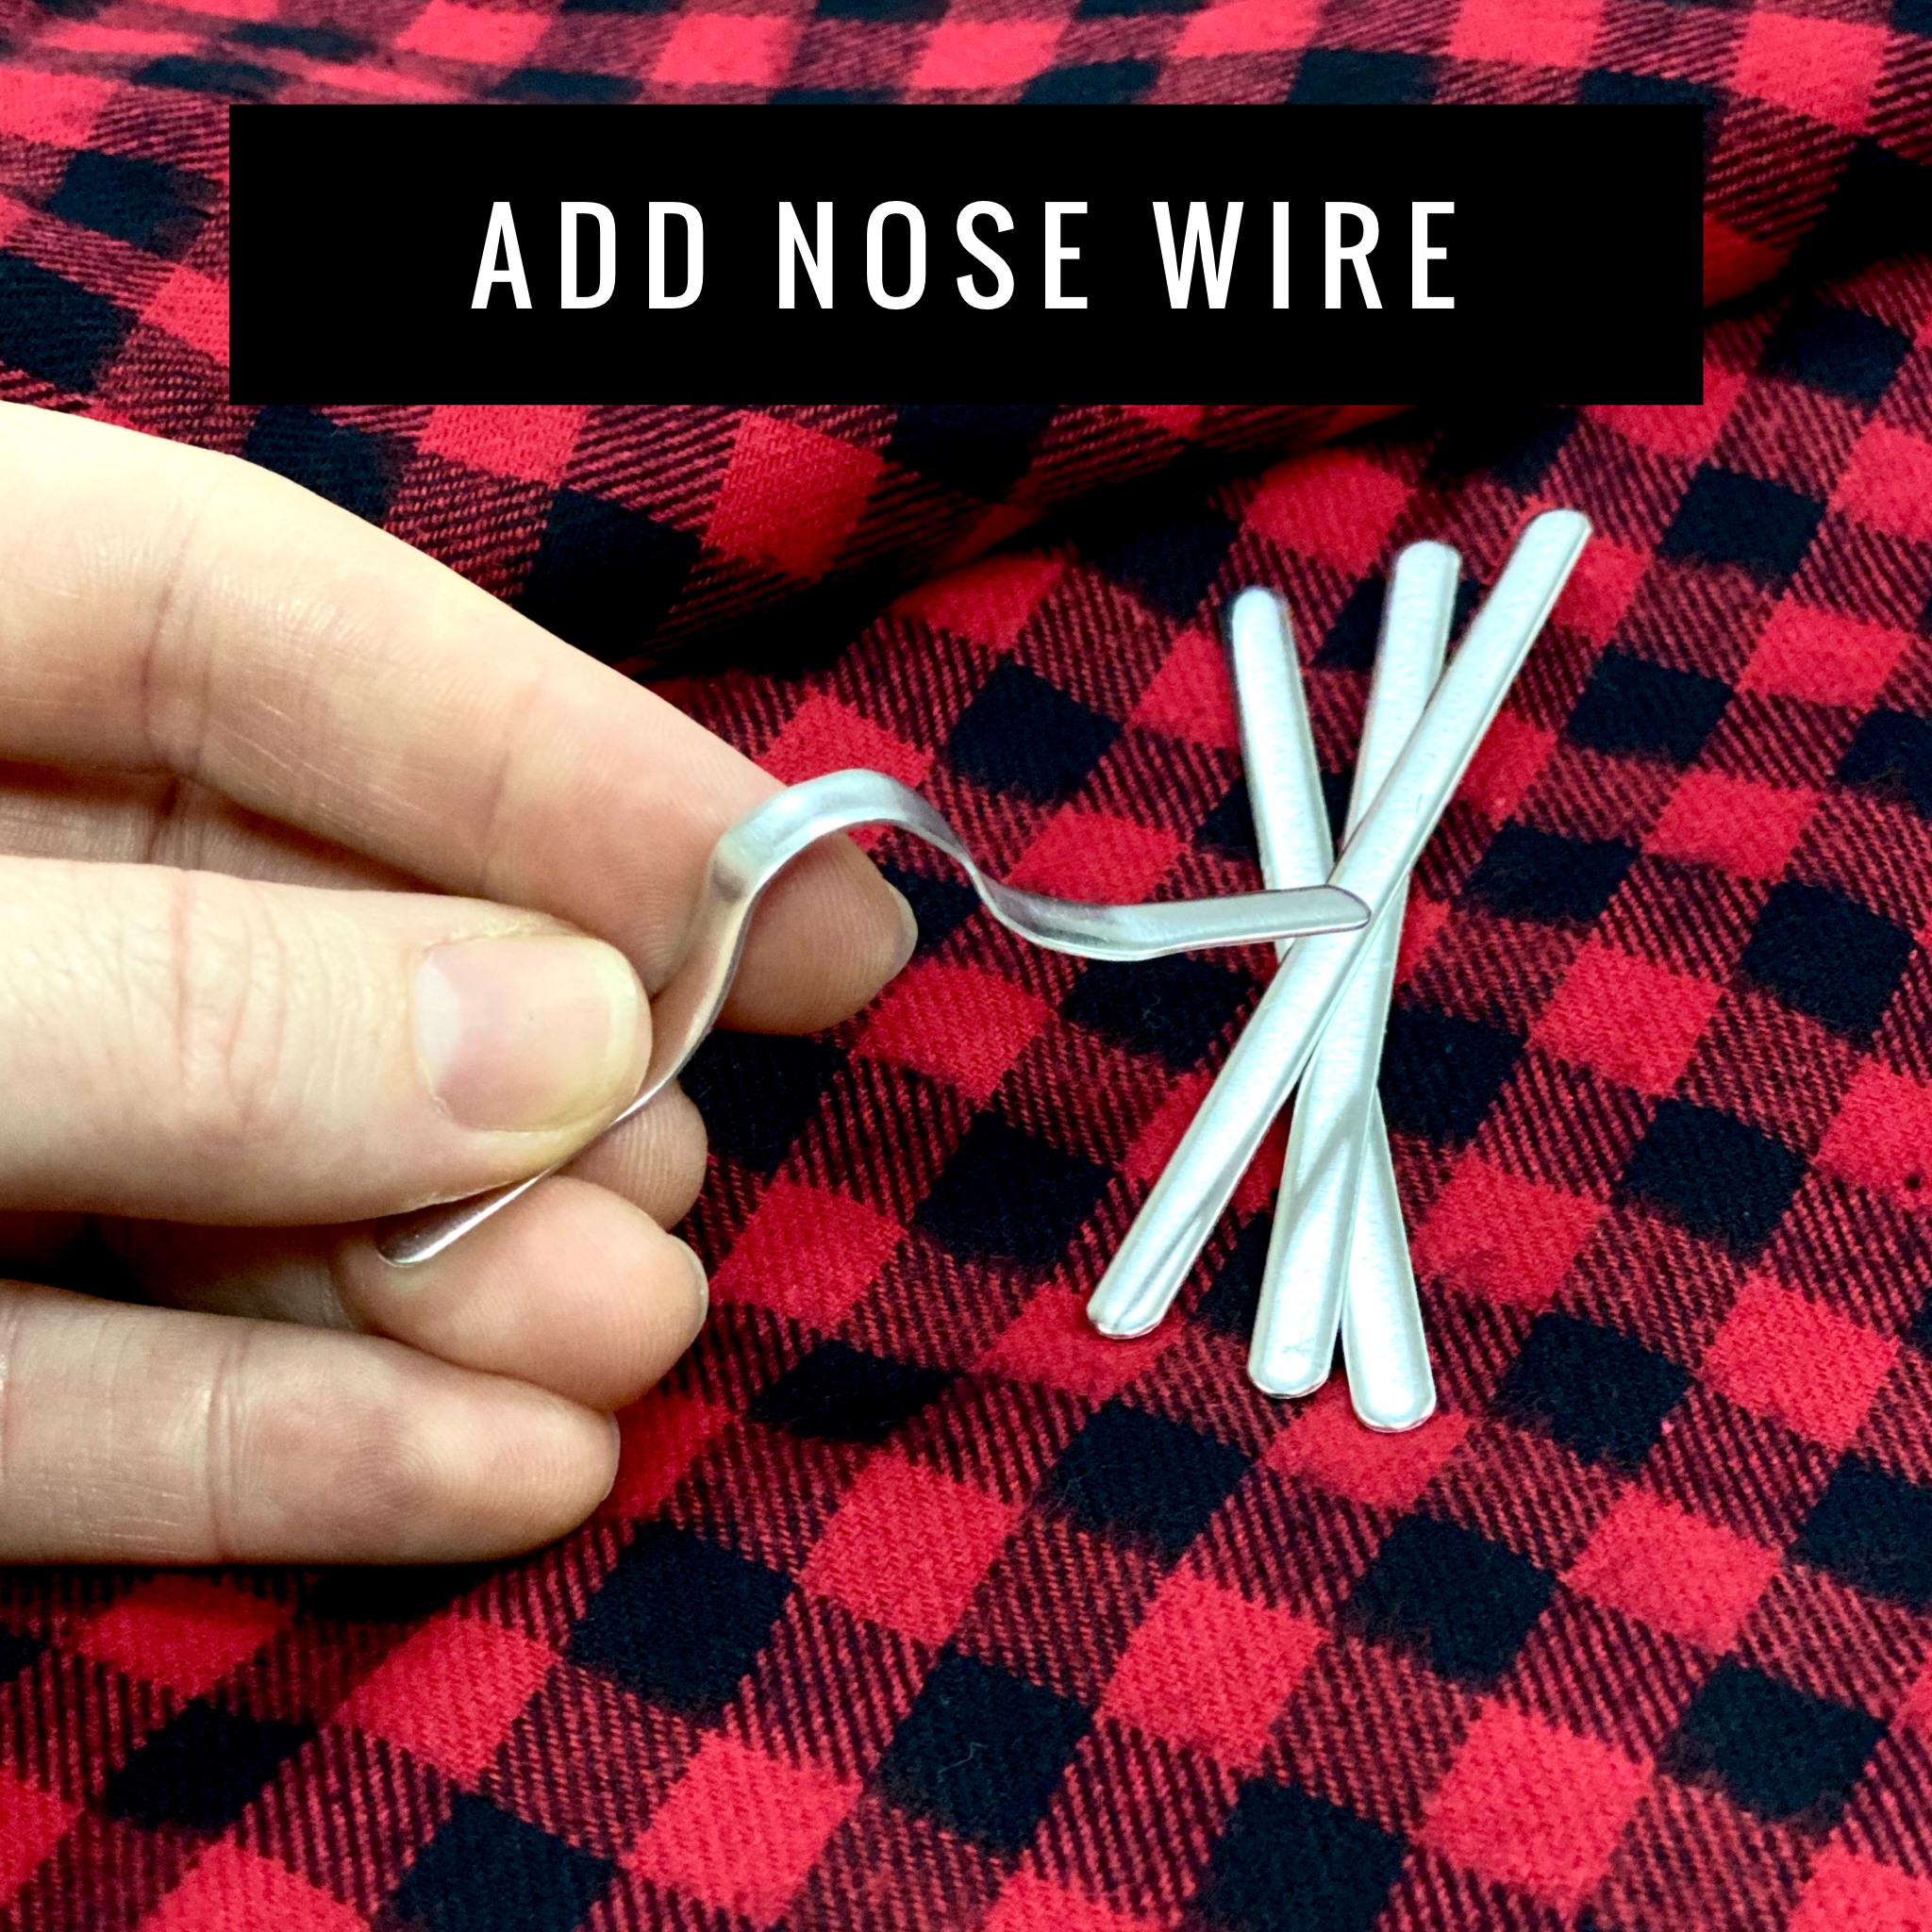 ADD Nose Wire to Mask - Per Mask